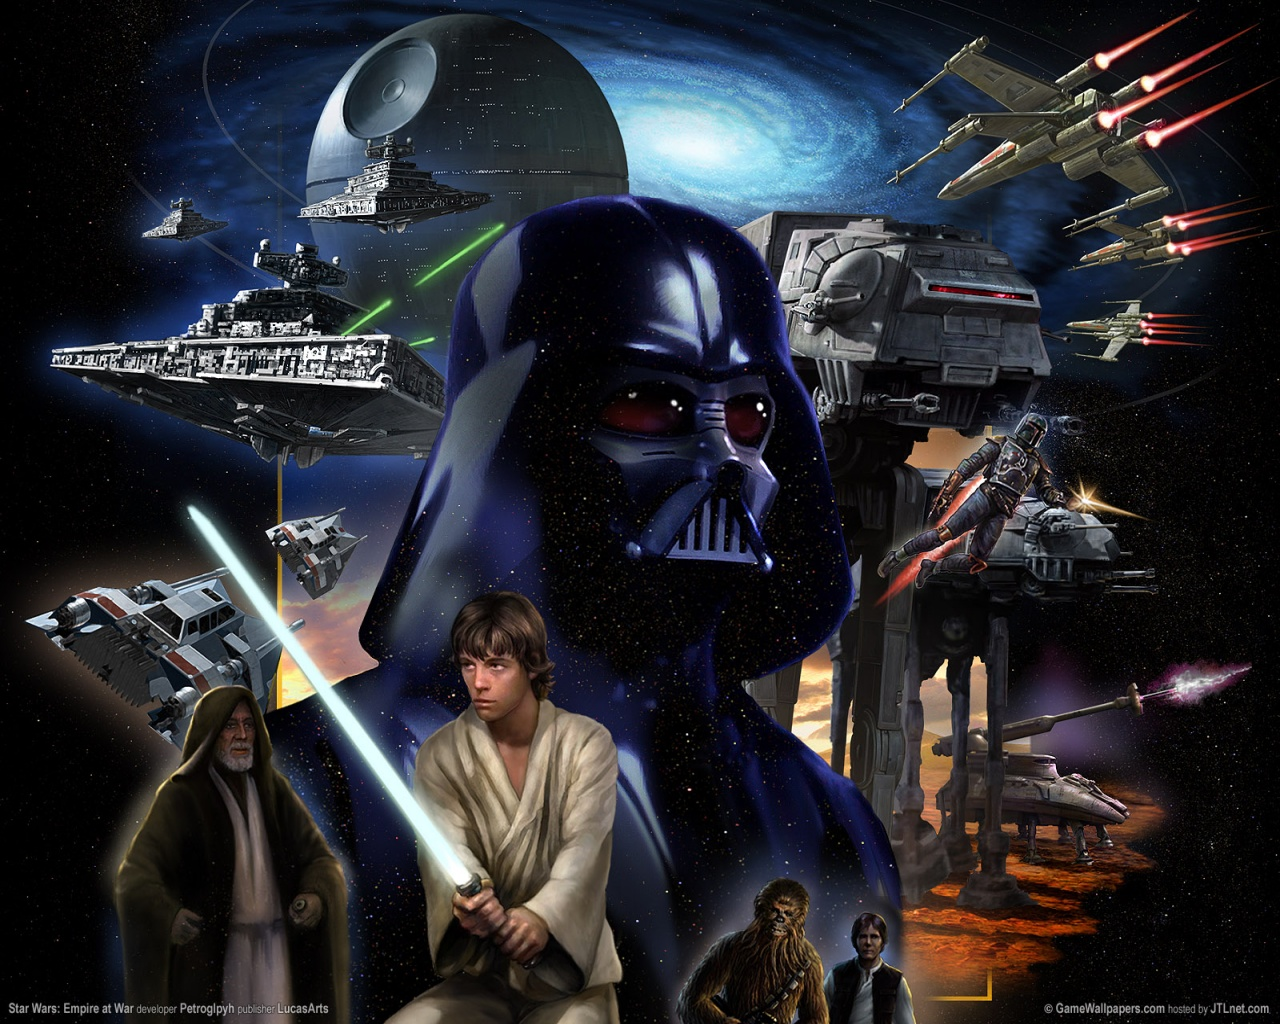 46 Star Wars Wallpaper 1280x1024 On Wallpapersafari